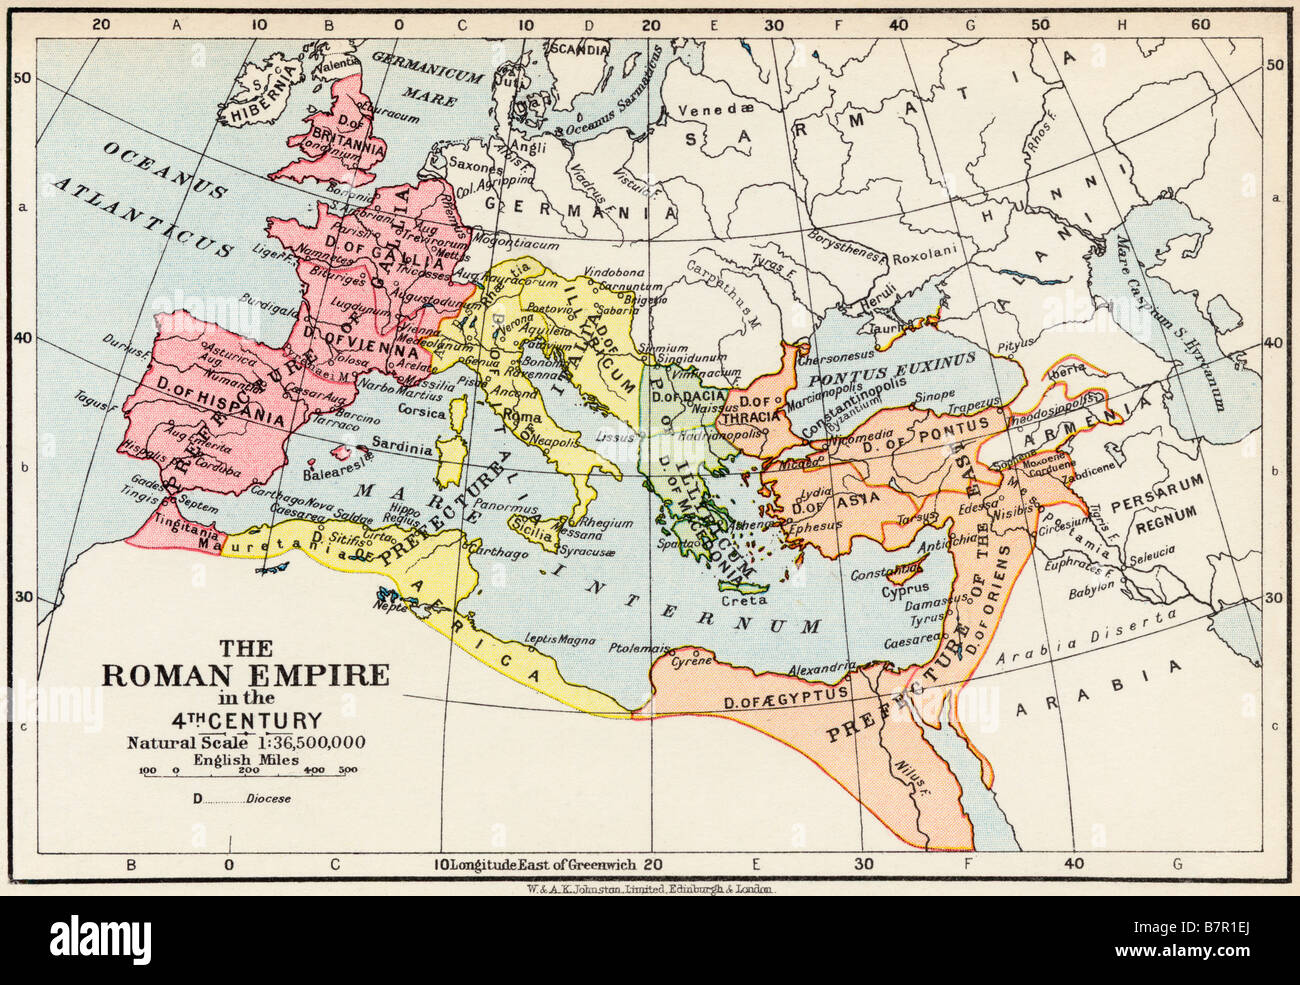 Map Of The Roman Empire In The 4th Century Stock Photo 22019050 Alamy